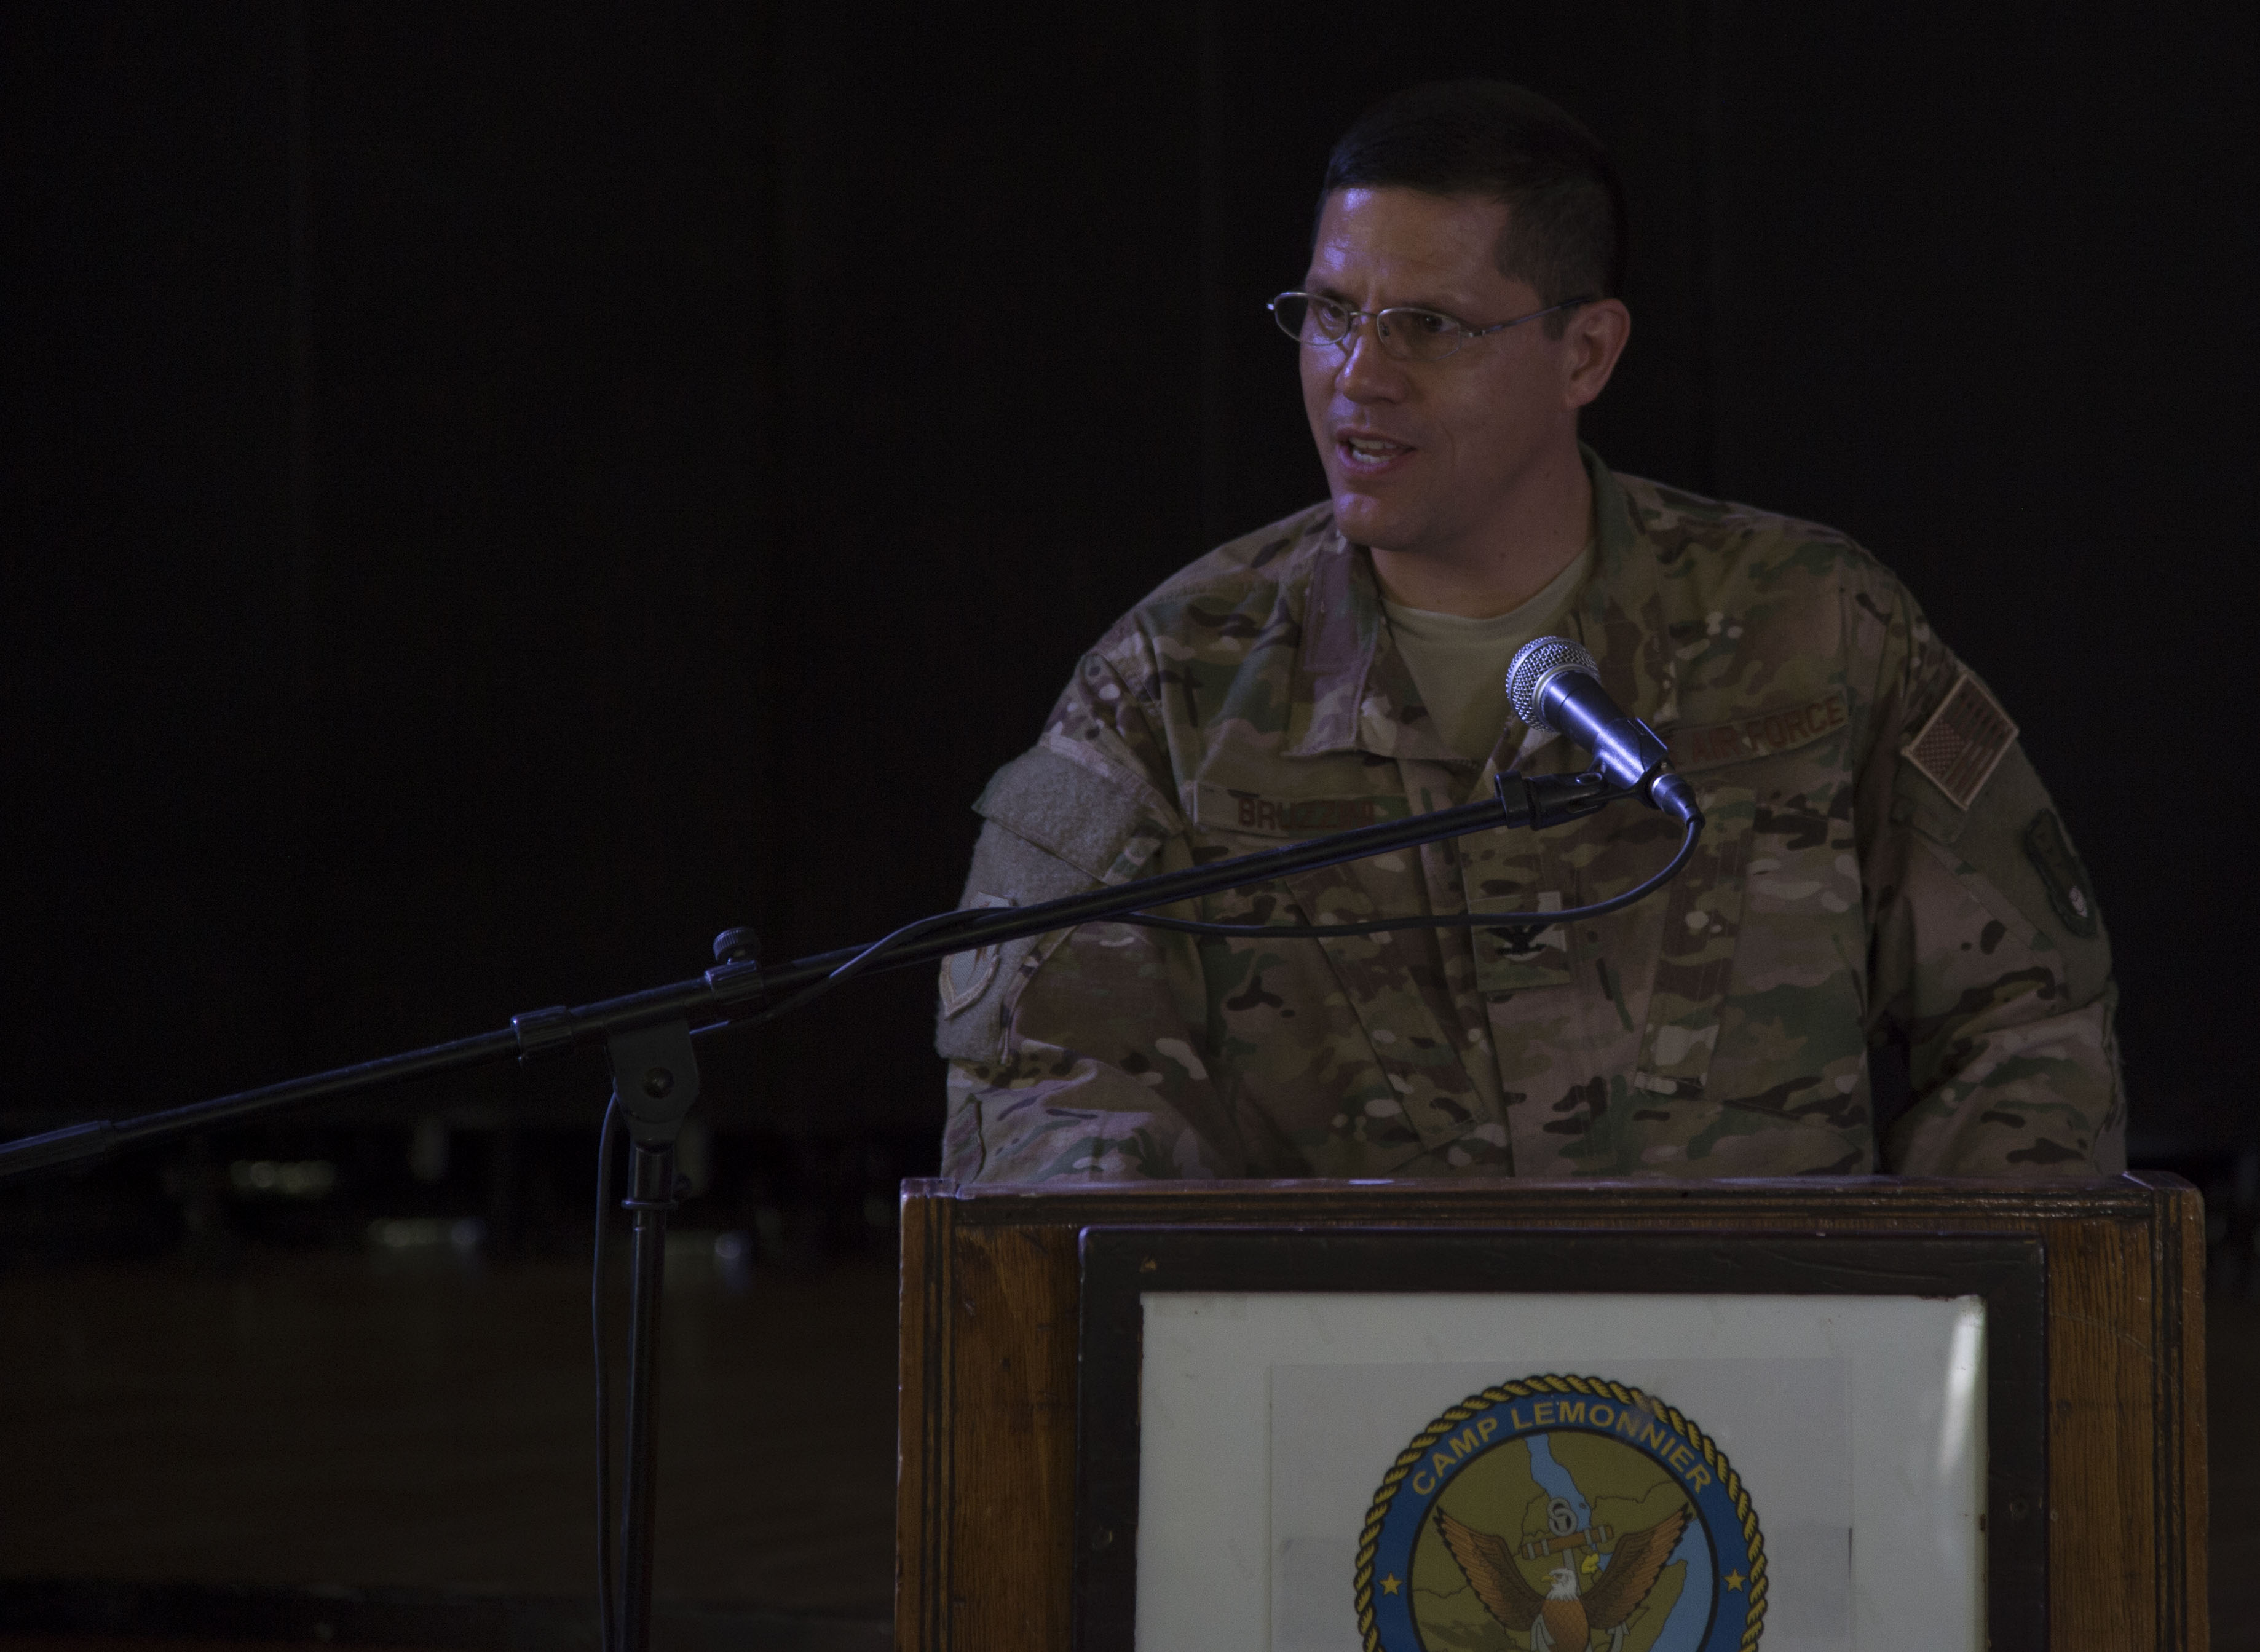 U.S. Air Force Col. Michael Bruzzini, 449th Air Expeditionary Group incoming commander, makes his first remarks to his new unit during the 449th AEG Change of Command ceremony June 6, 2016, at Camp Lemonnier, Djibouti. Bruzzini comes to the 449th AEG from the Office of the Assistant Secretary of the Air Force for Financial Management and Comptroller, where he served as the deputy assistant secretary for programs. (U.S. Air Force photo by Staff Sgt. Eric Summers Jr.)